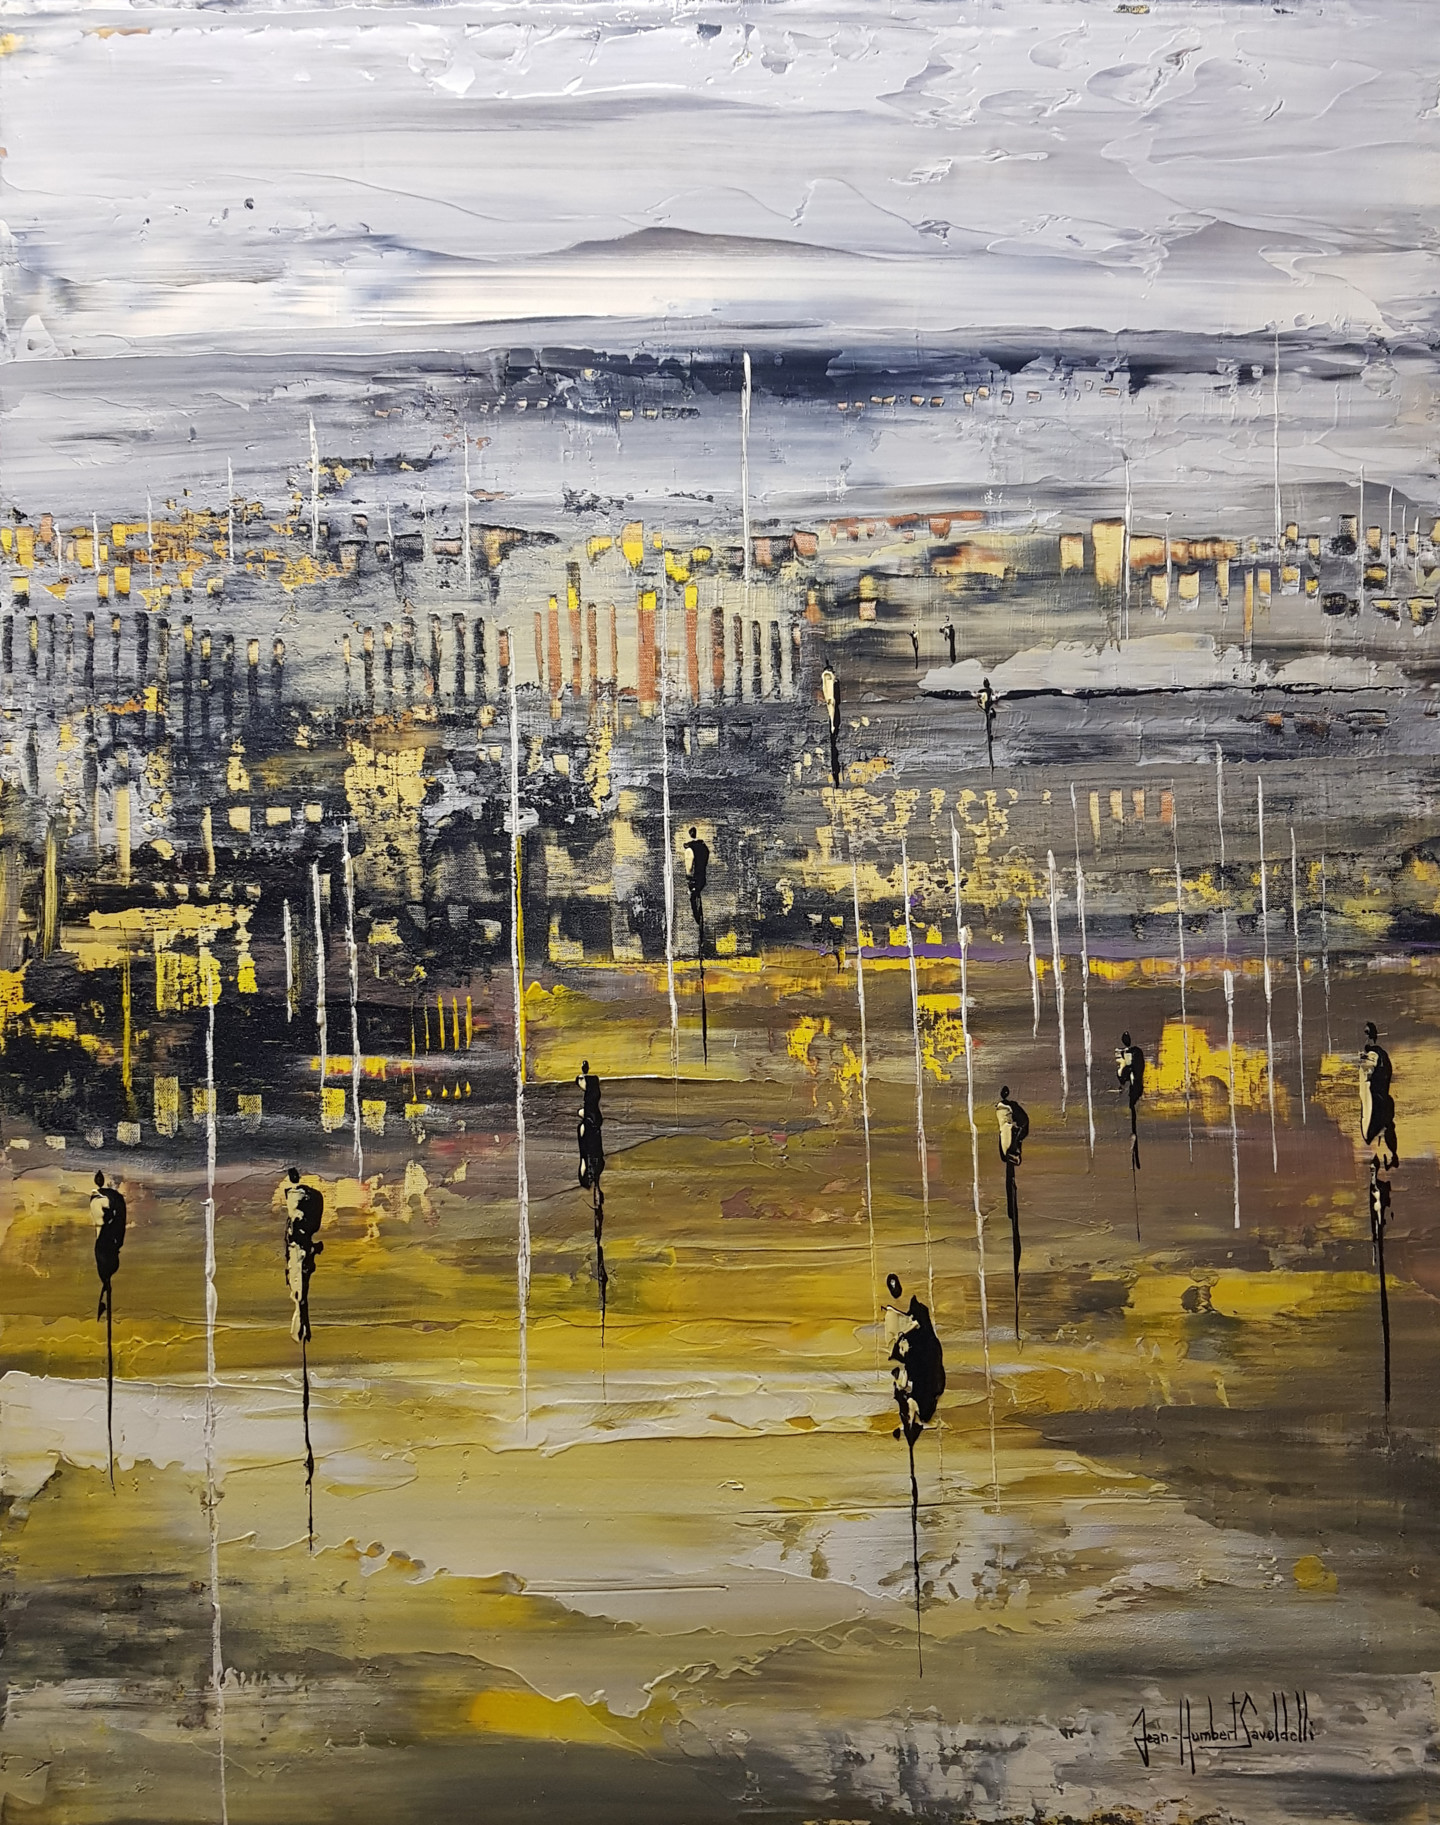 Jean-Humbert Savoldelli - OTHER DAY OTHER WAY